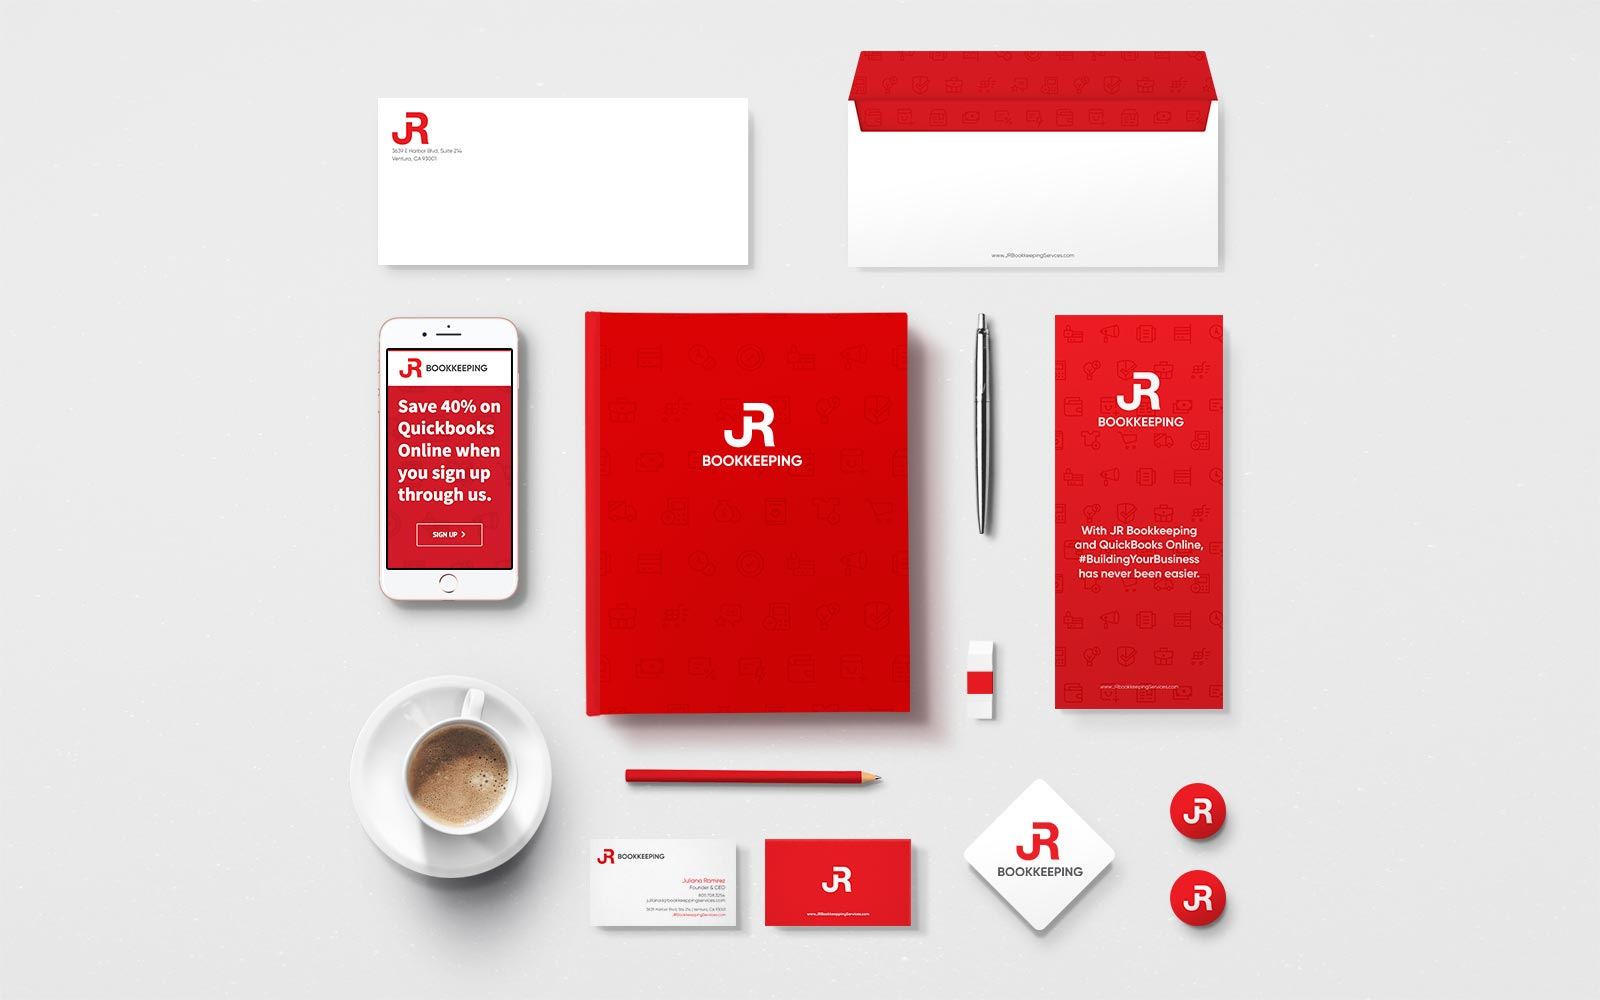 JR-Bookkeeping-Rebrand-branded-collateral